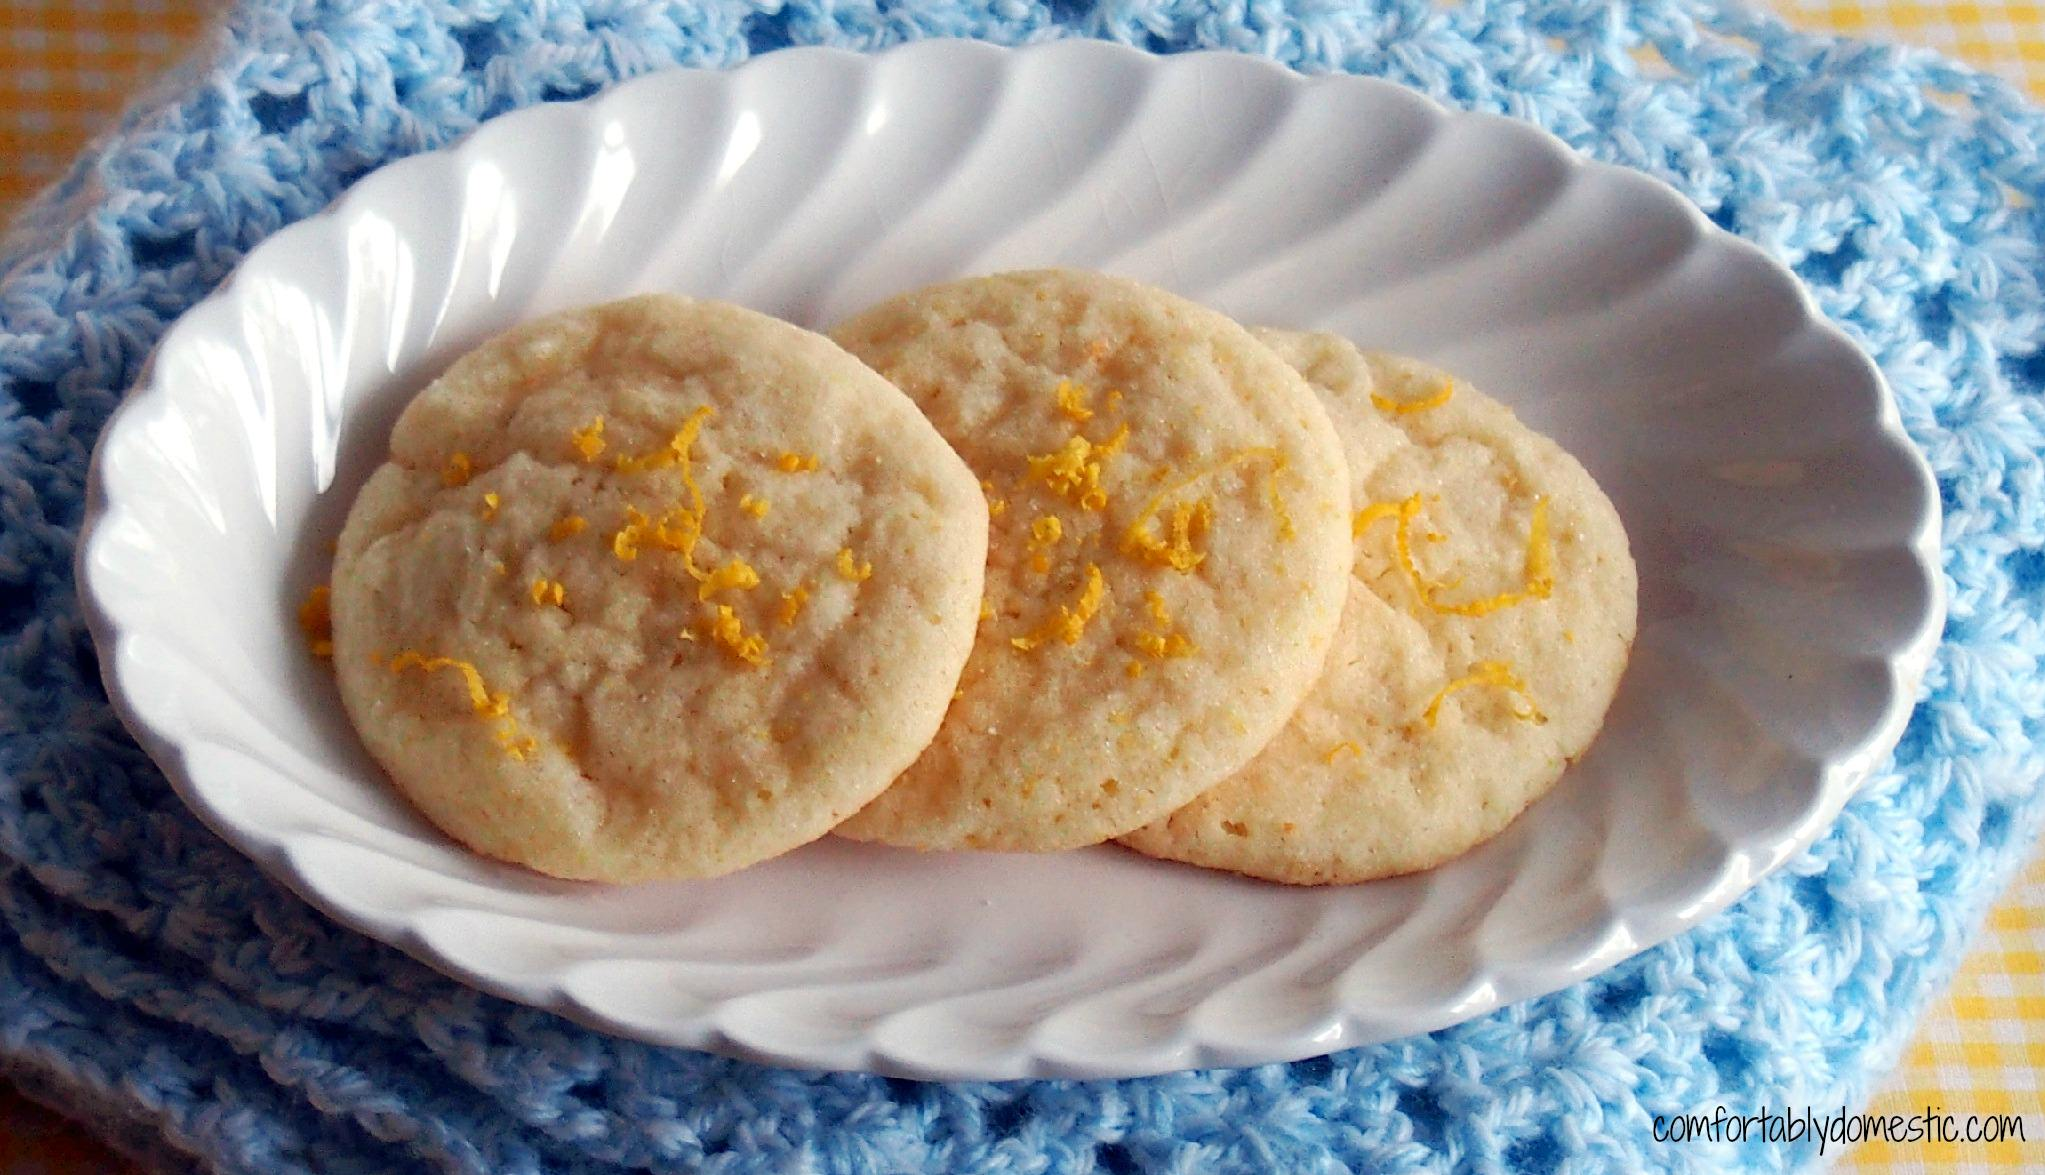 Lemon Doodles are the perfect balance between a chewy, light lemon cookie and soft lemon cake. Tangy and sweet, with a crunchy lemon sugar topping, these cookies are the ultimate treat! | ComfortablyDomestic.com